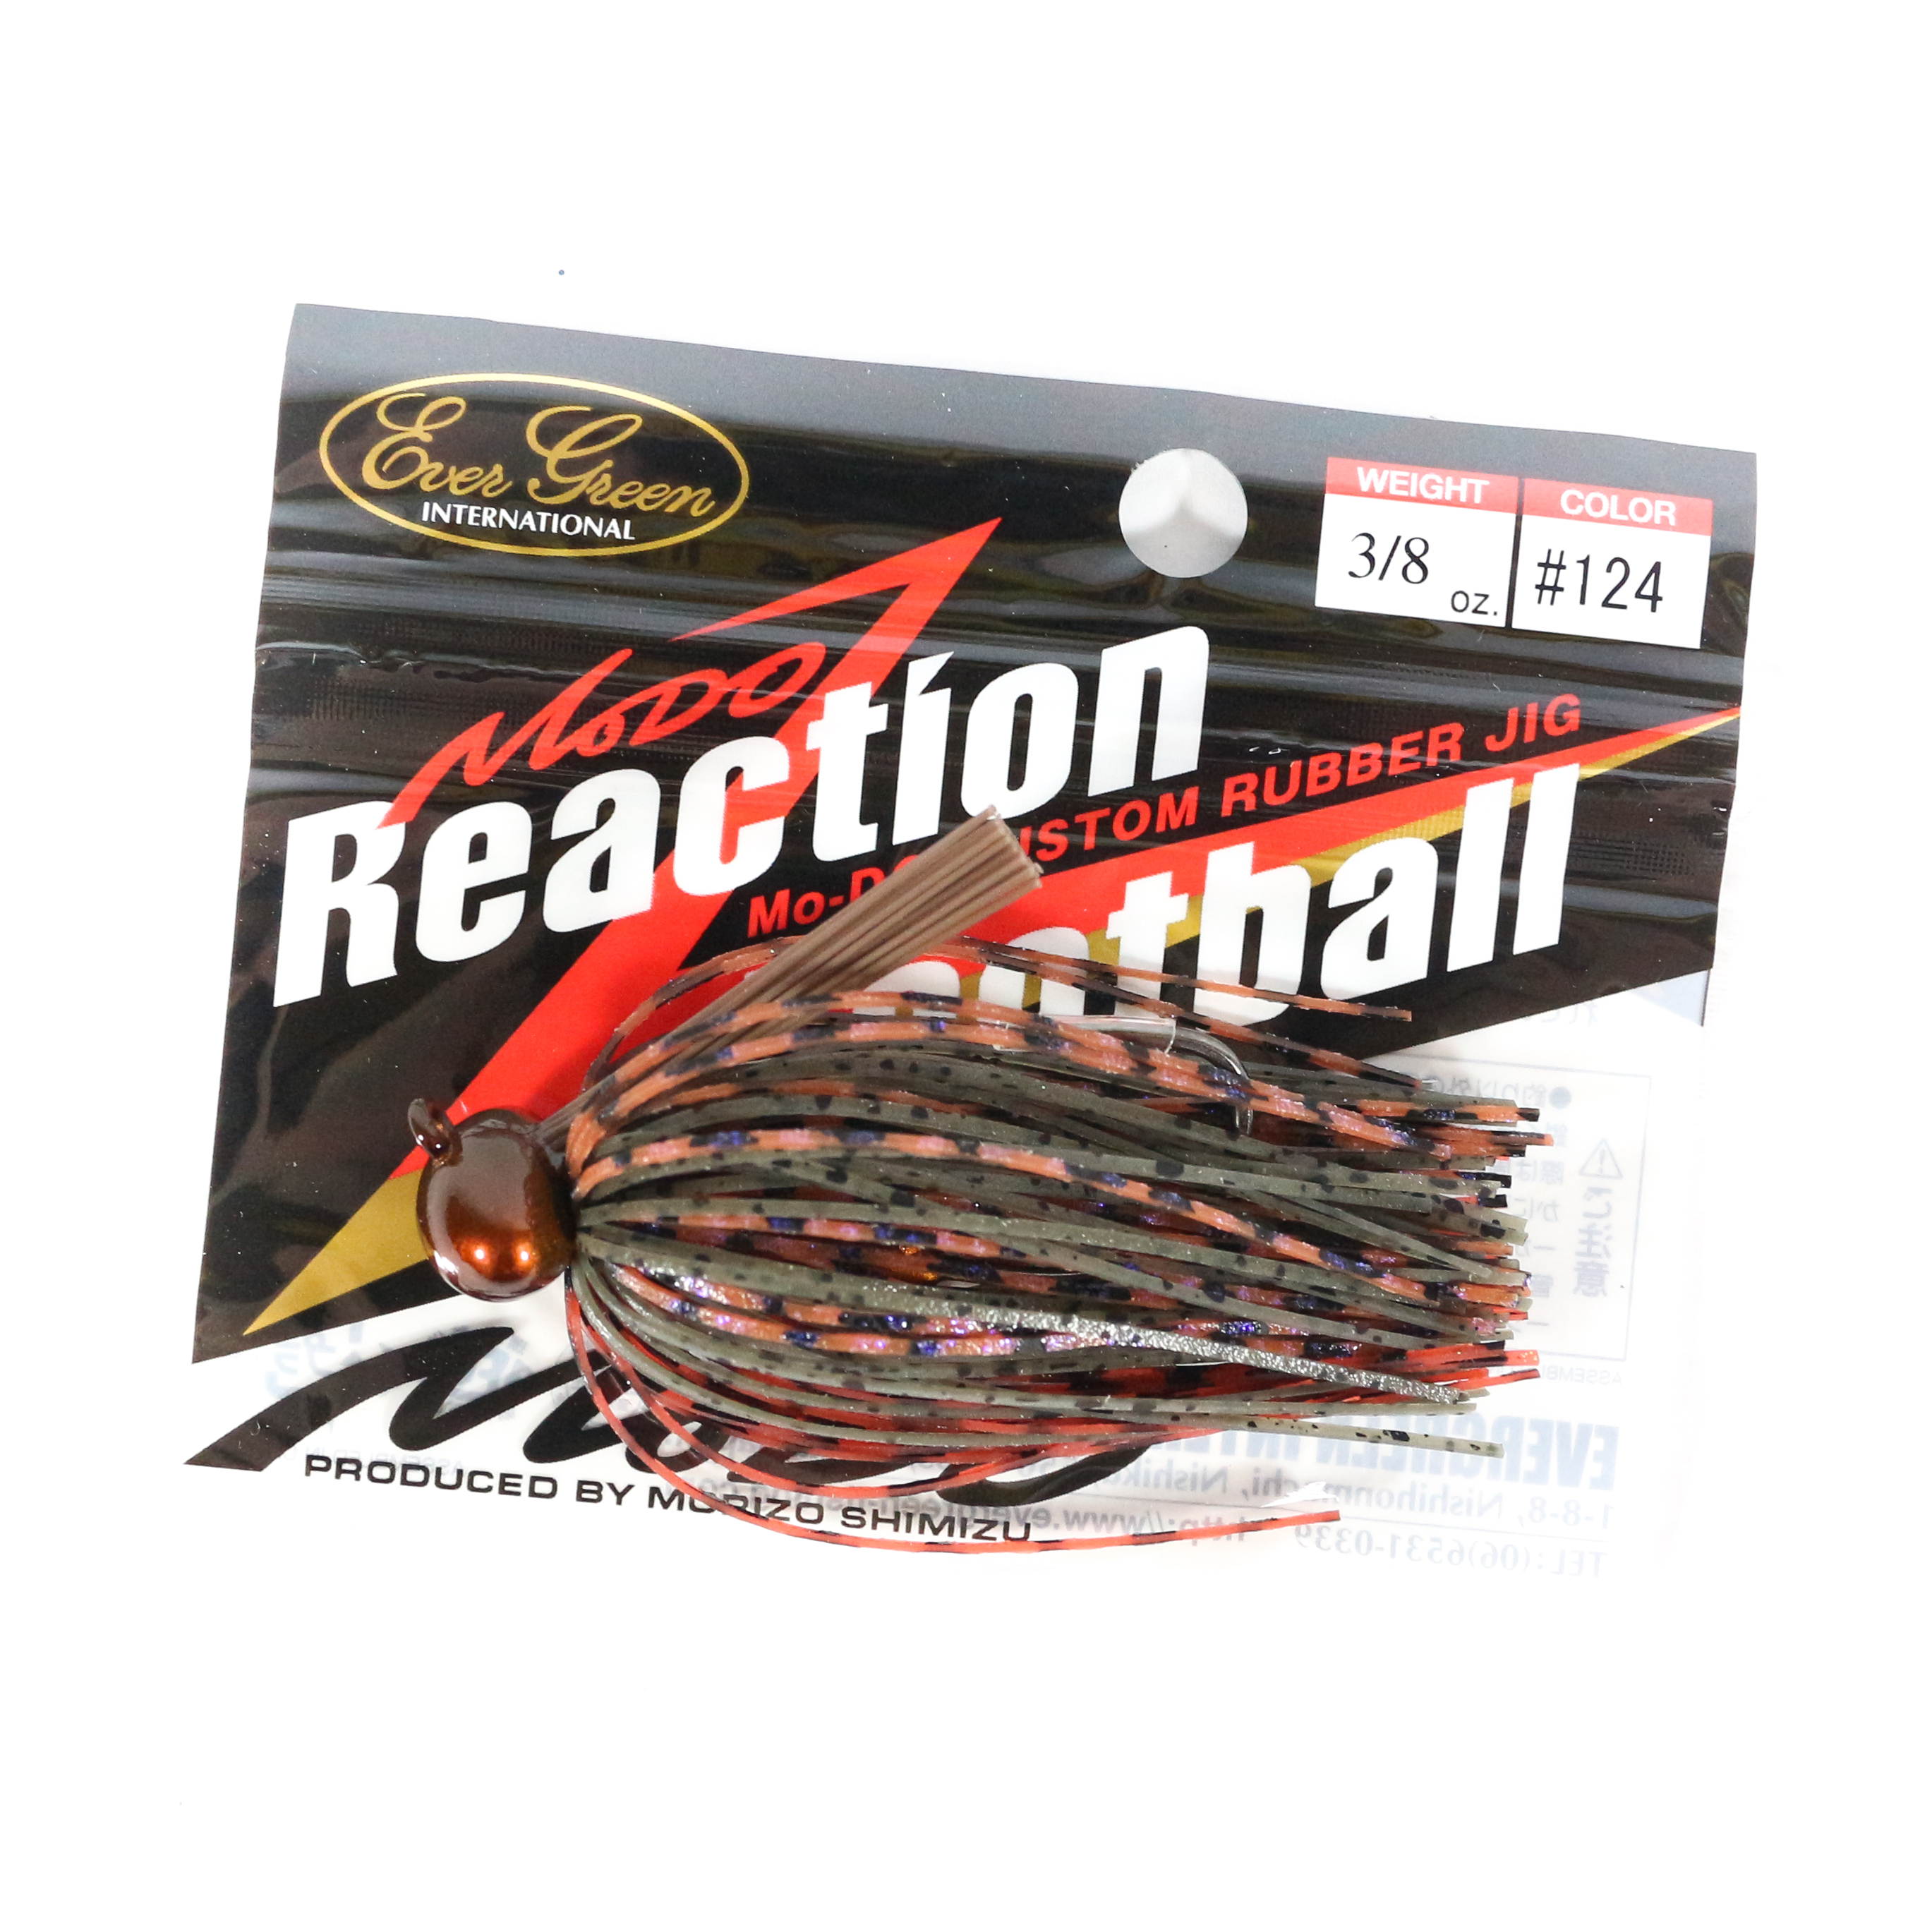 Evergreen Reaction Football Casting Jig 3/8 oz 124 (2255)